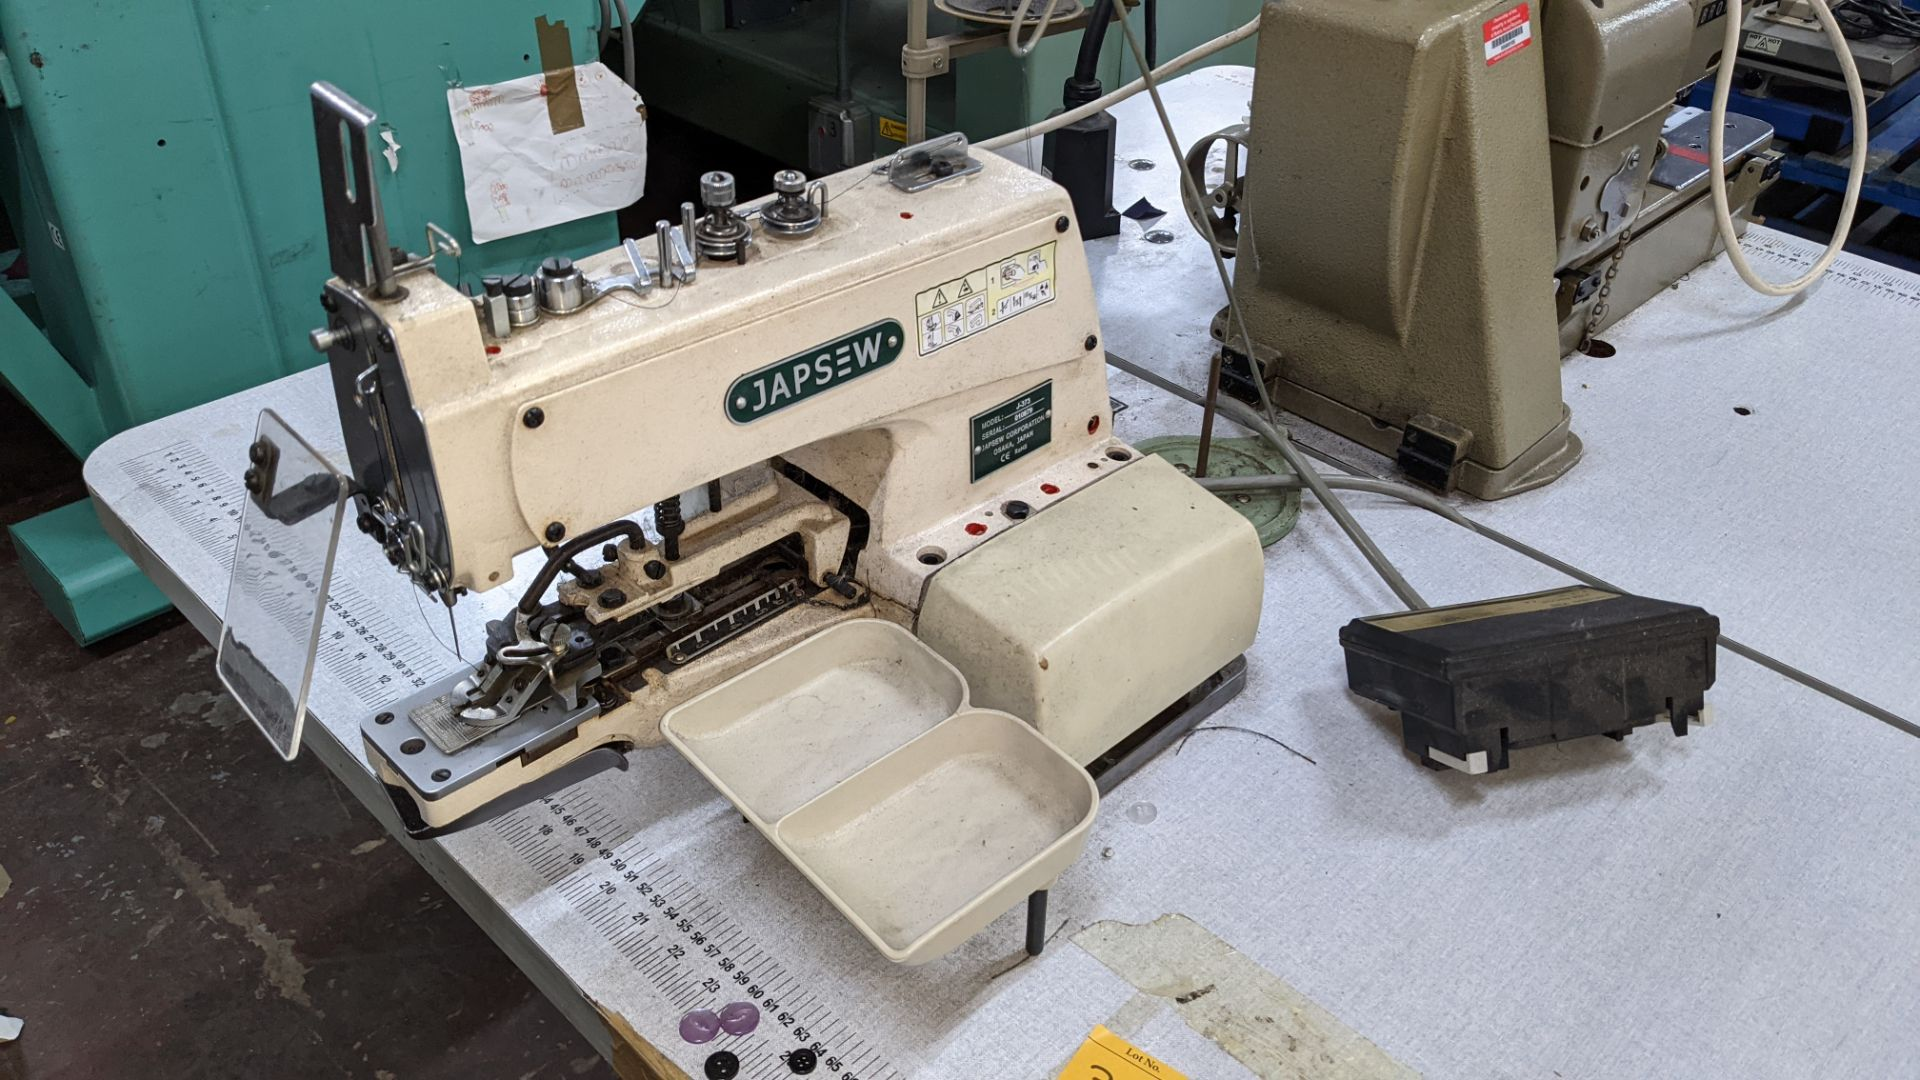 Japsew model J-373 button sewer - Image 4 of 15